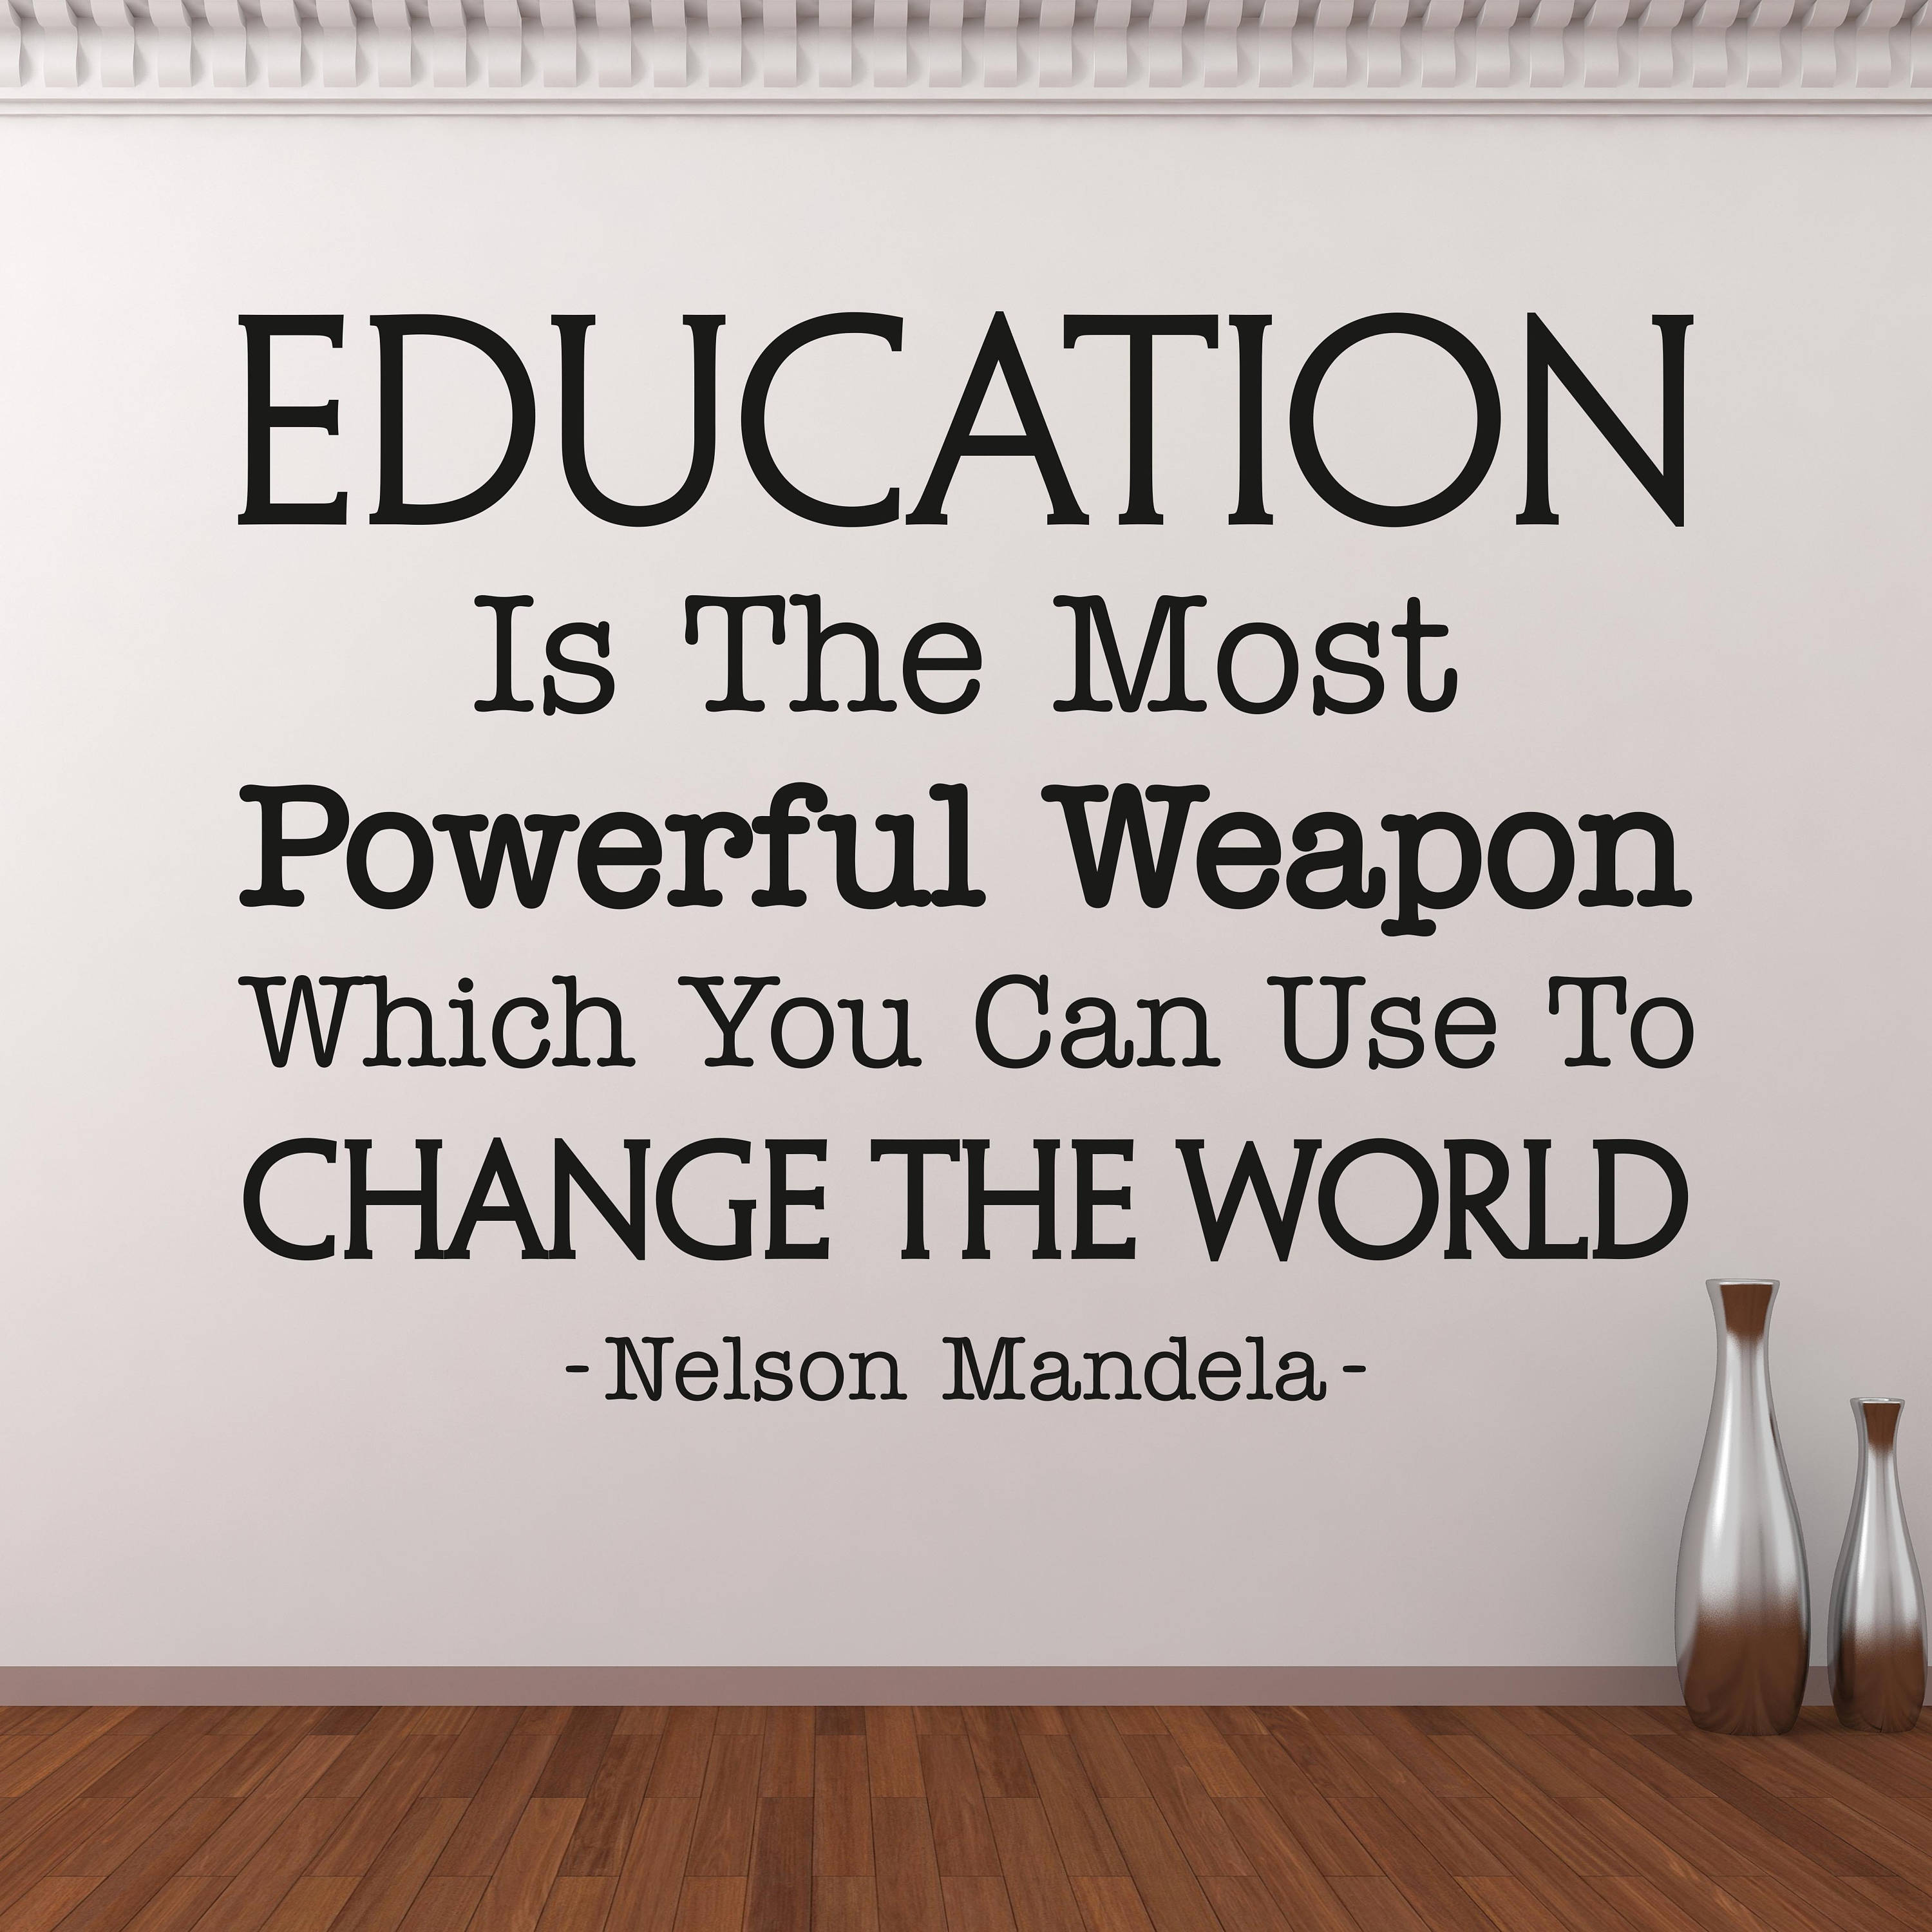 Educational Inspirational Quotes Education Is The Most Powerful Weapon Wall Decal Inspirational